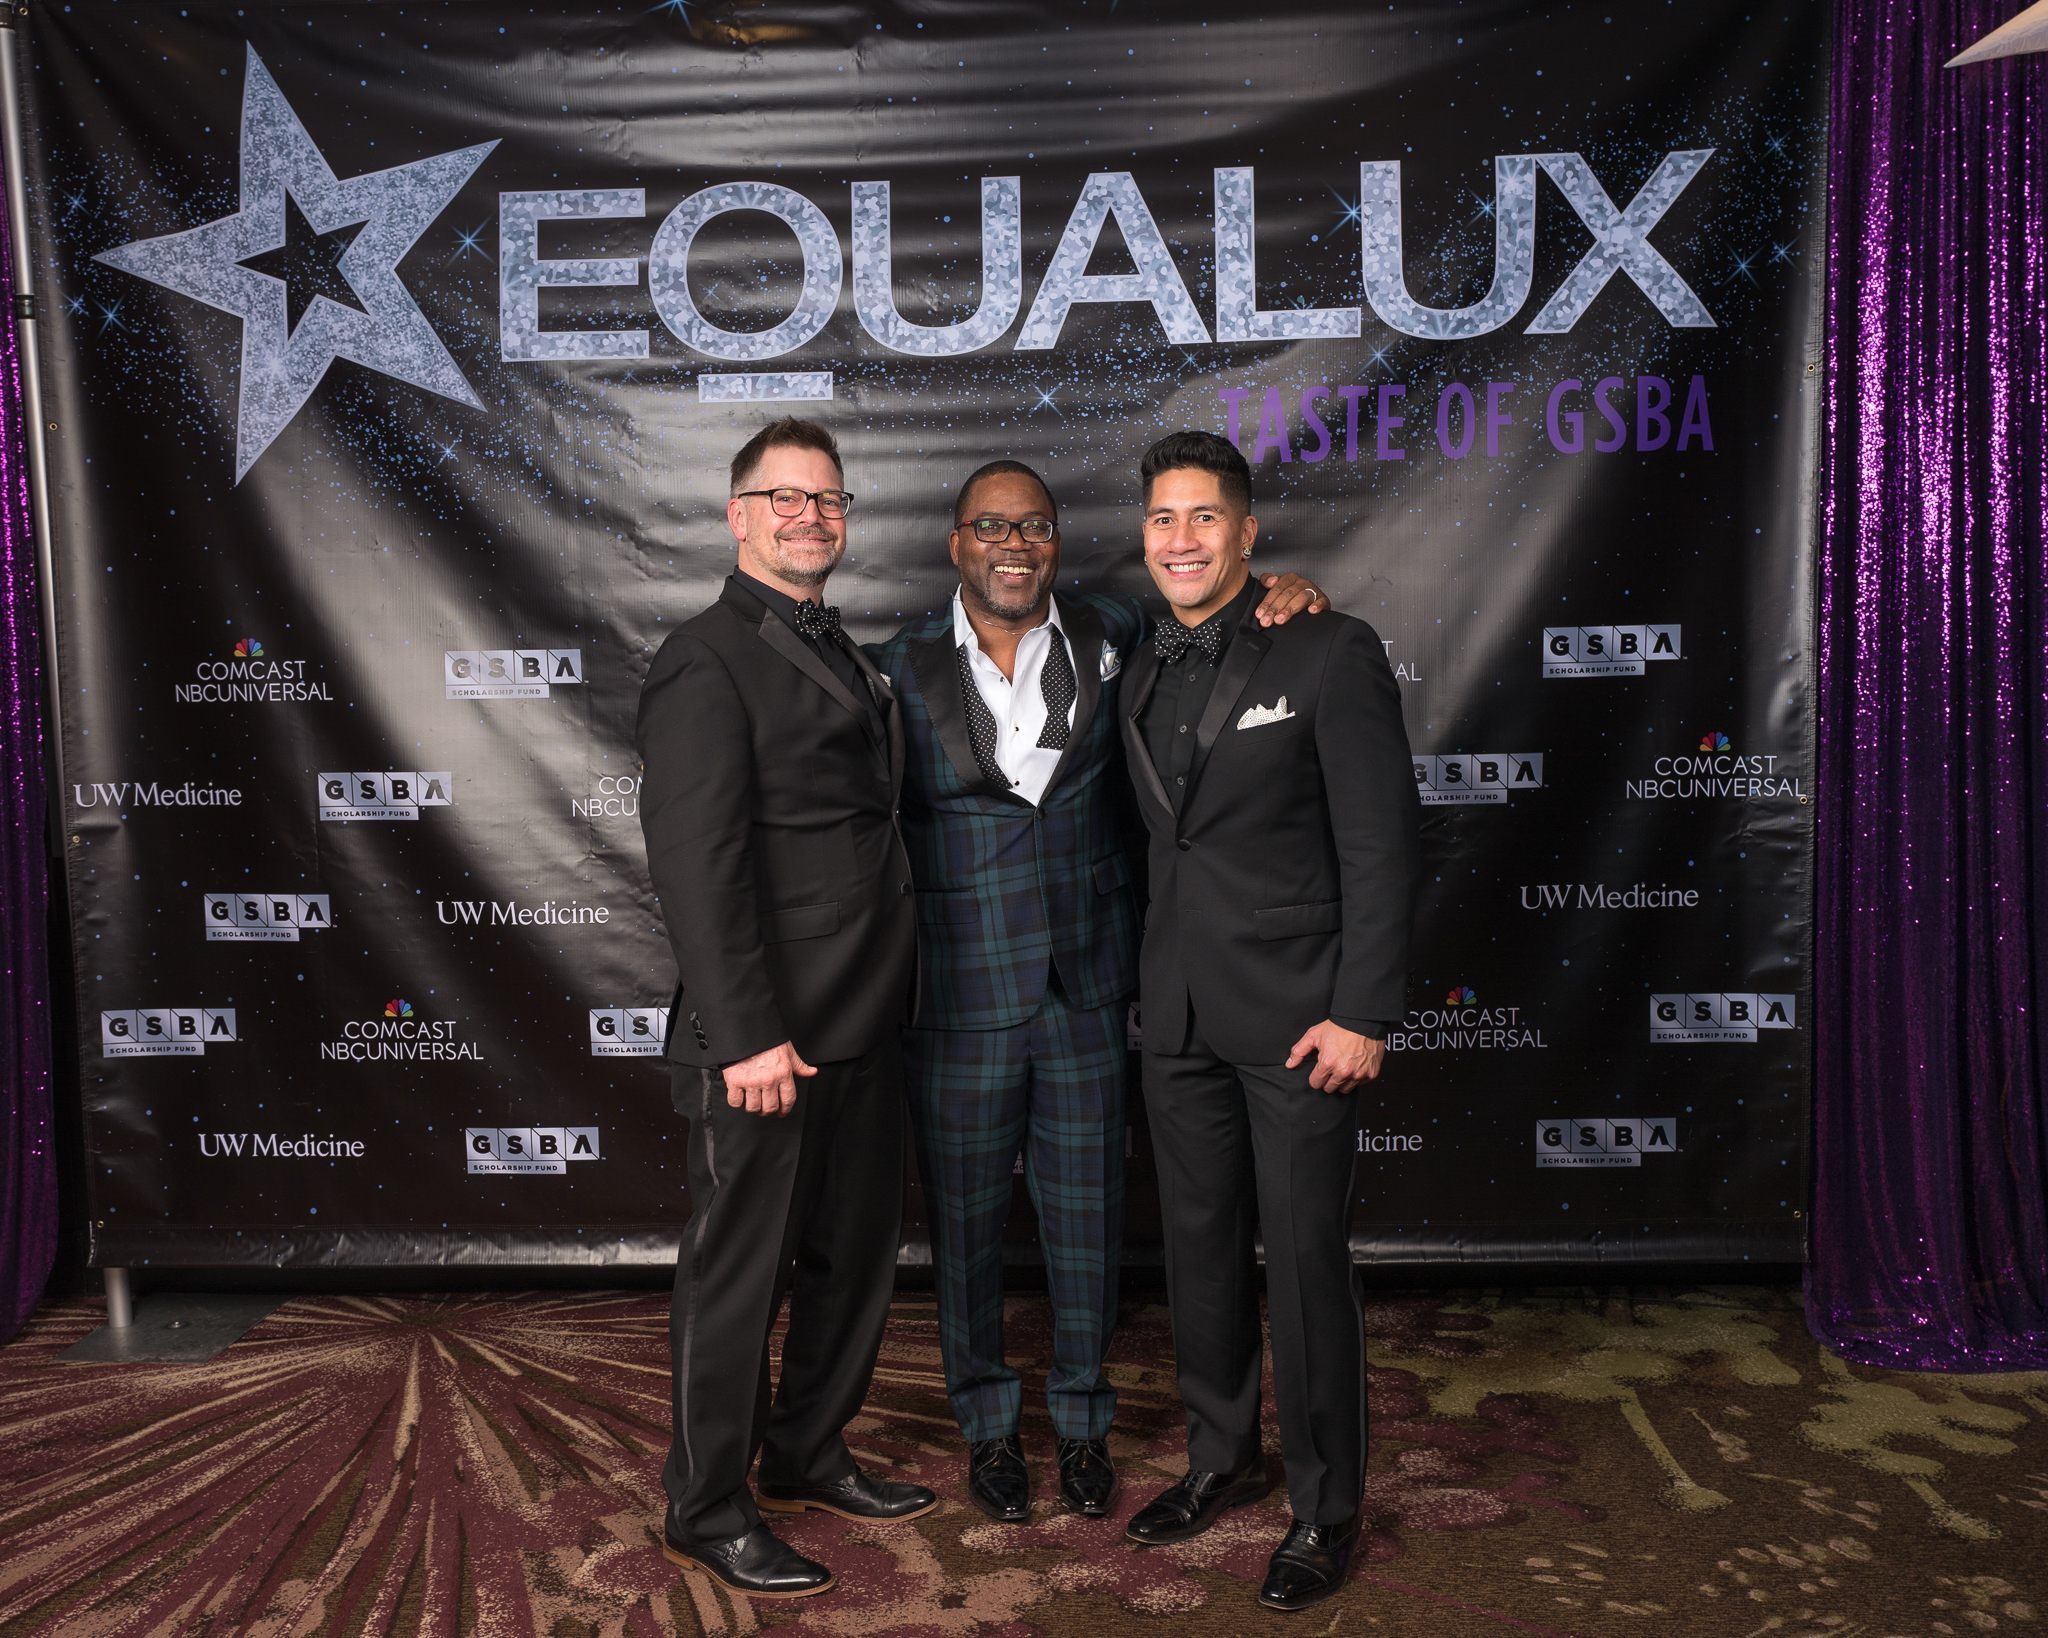 111718_GSBA EQUALUX at The Westin Seattle (Credit- Nate Gowdy)-158.jpg